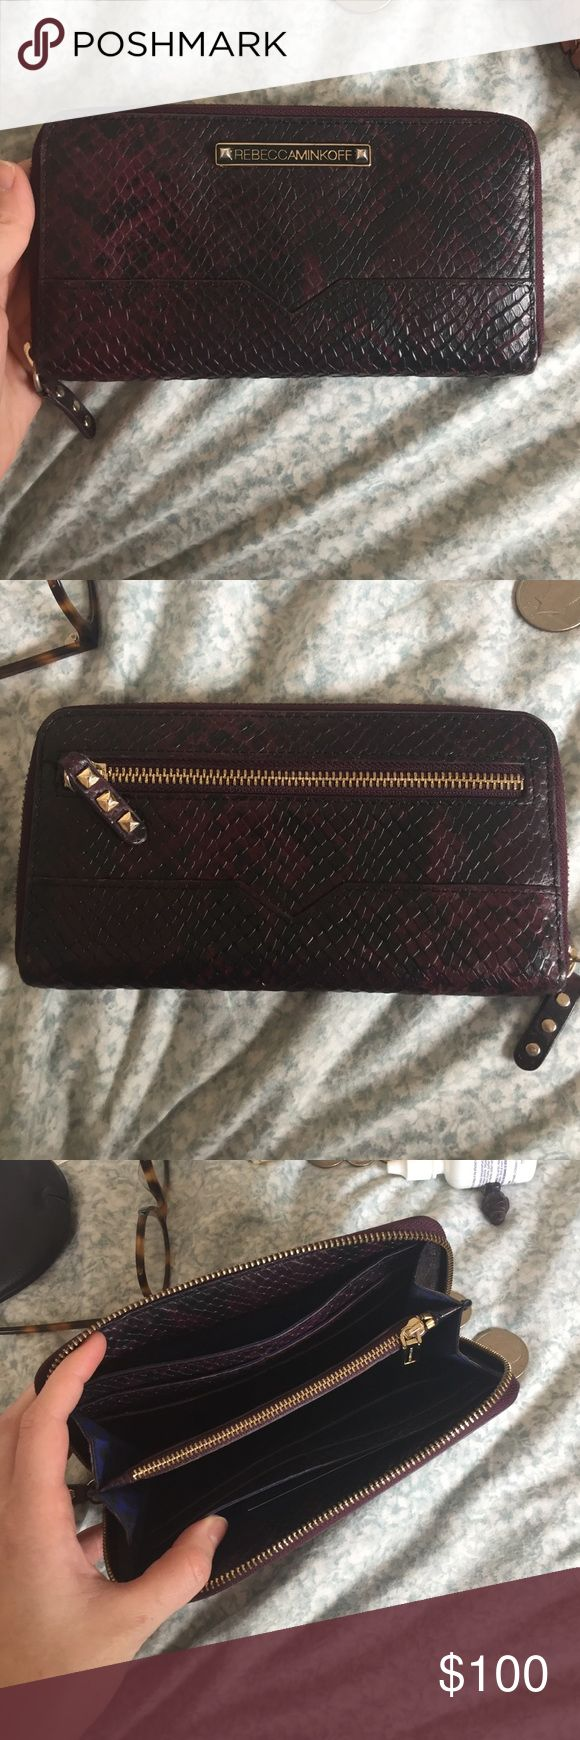 Rebecca Minkoff continental zip-around wallet Excellent, like new condition Rebecca Minkoff Bags Wallets